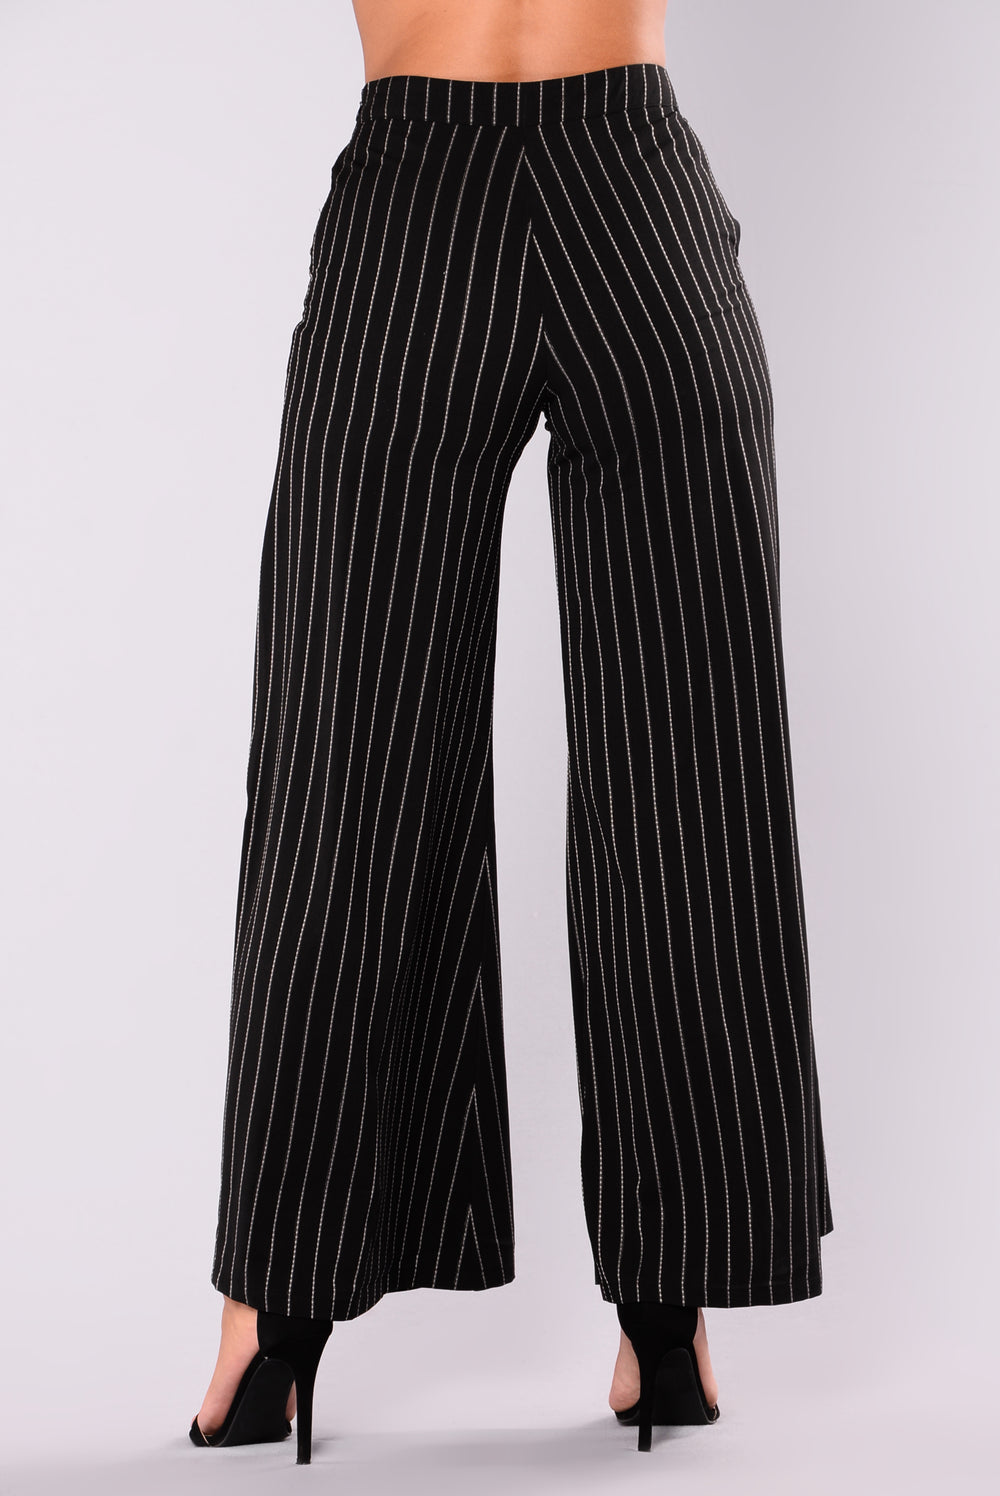 Skylar High Waisted Flare Pants - Black/White